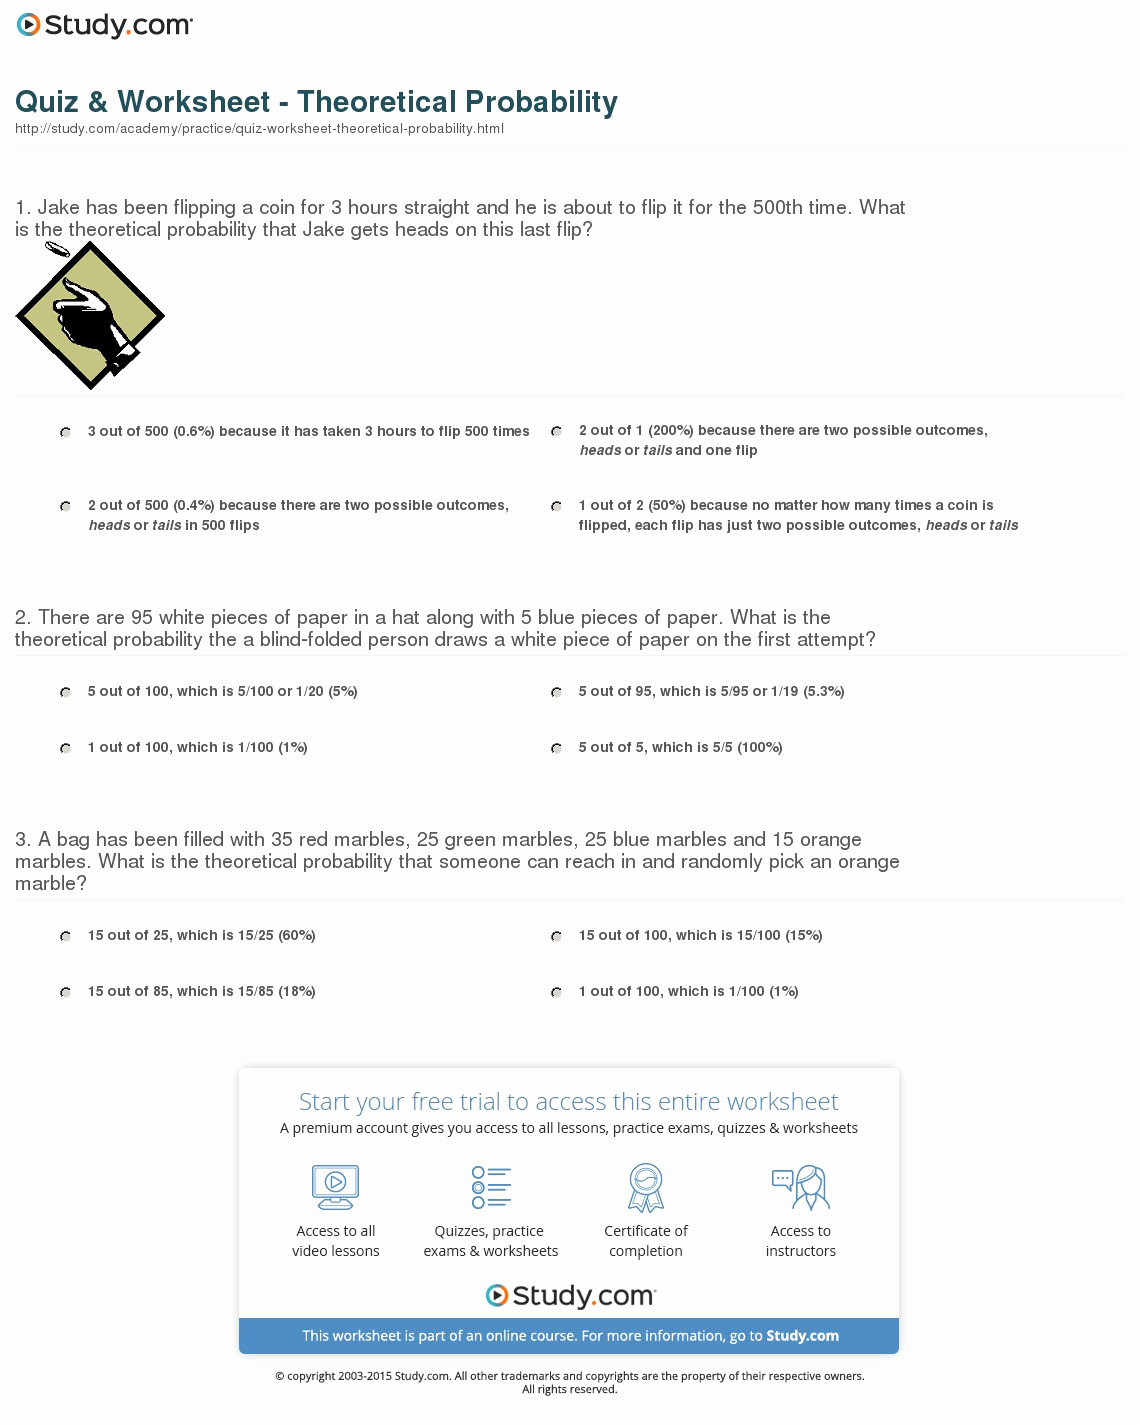 Dependent Probability Worksheets Beautiful Independent and Dependent Probability Worksheet with